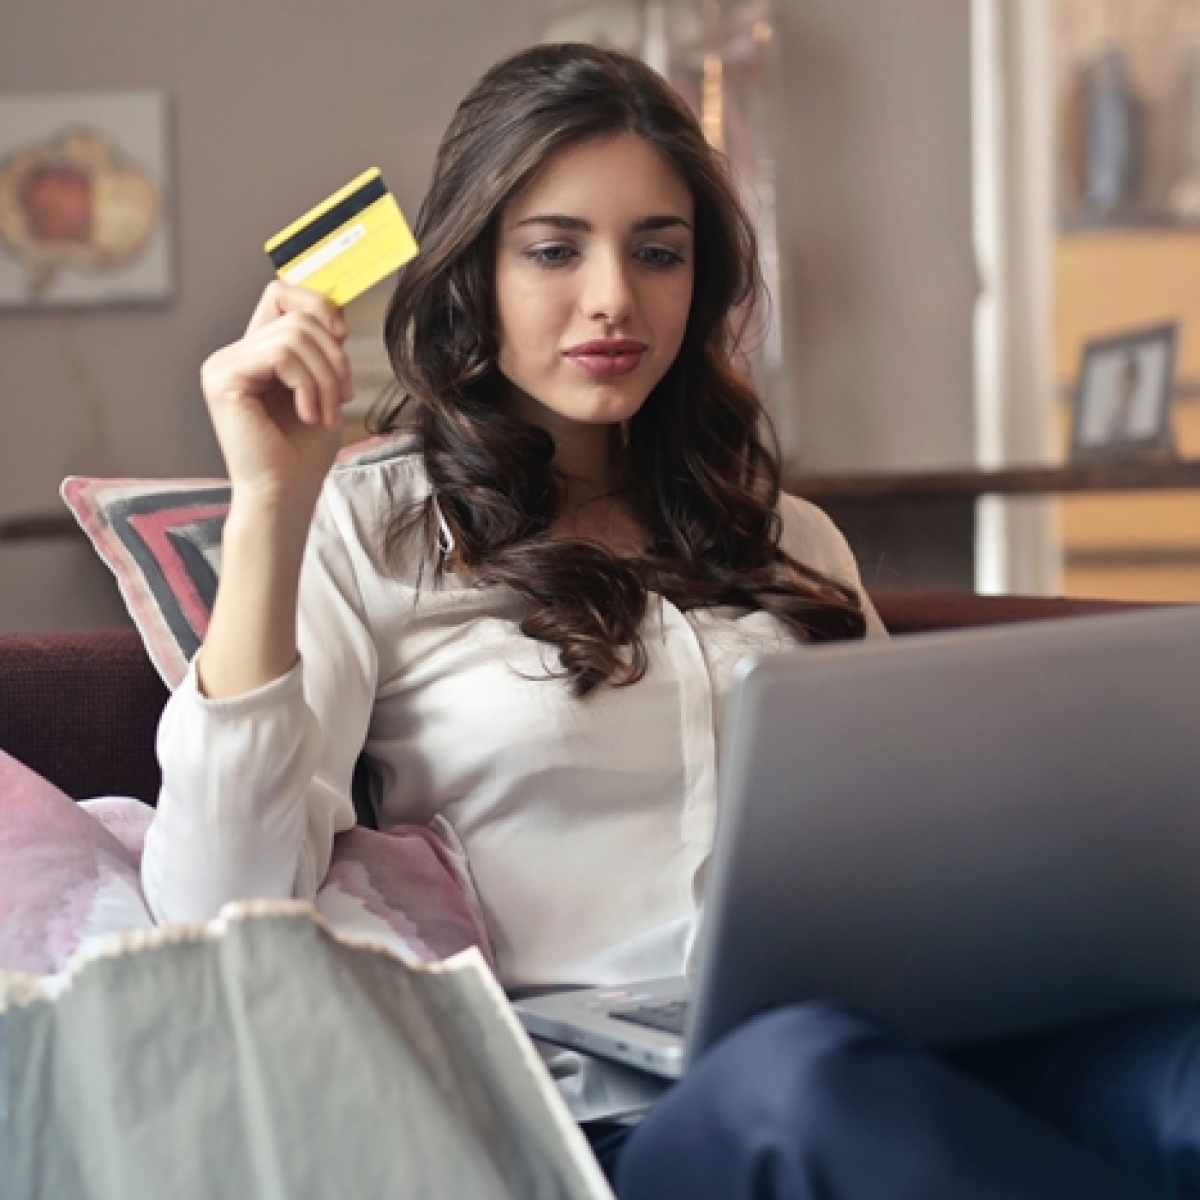 Hey, shopaholics! Now you can get paid to shop online